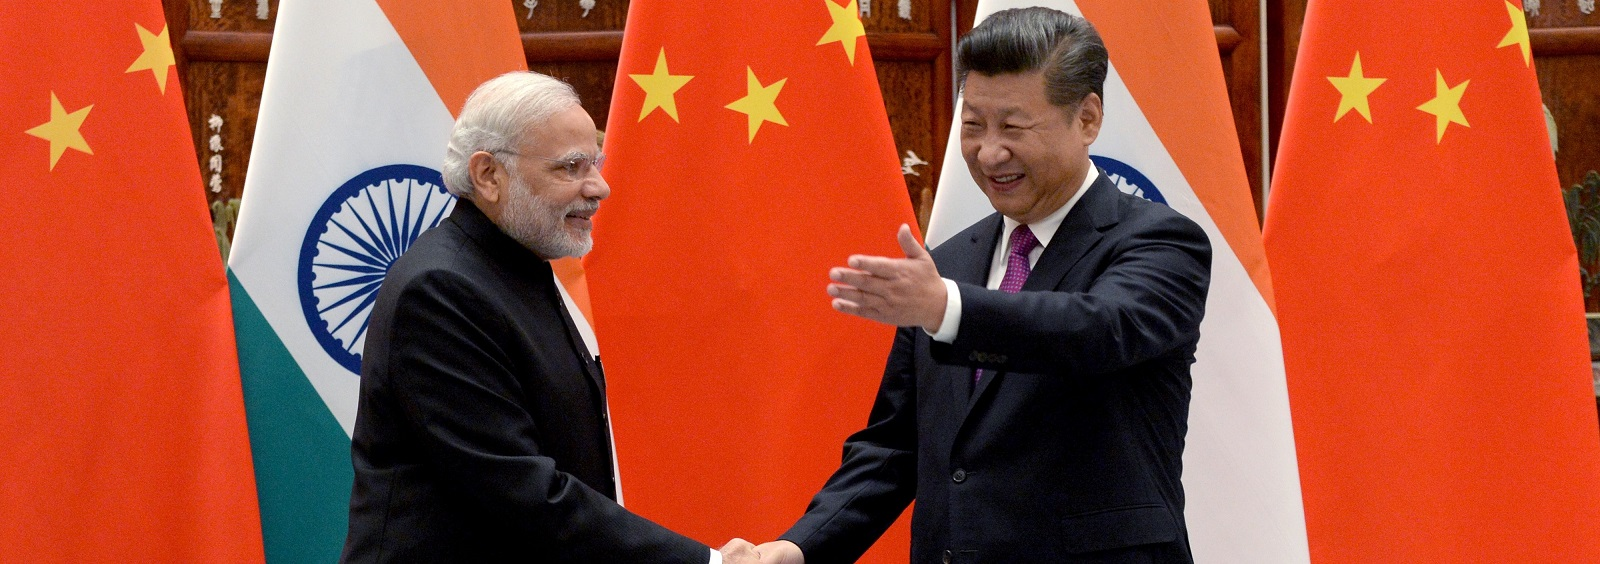 India's Narendra Modi and China's Xi Jinping - fiercely nationalistic leaders with a sense of personal destiny - are steering a more integrated Asia (Photo: Getty Images)